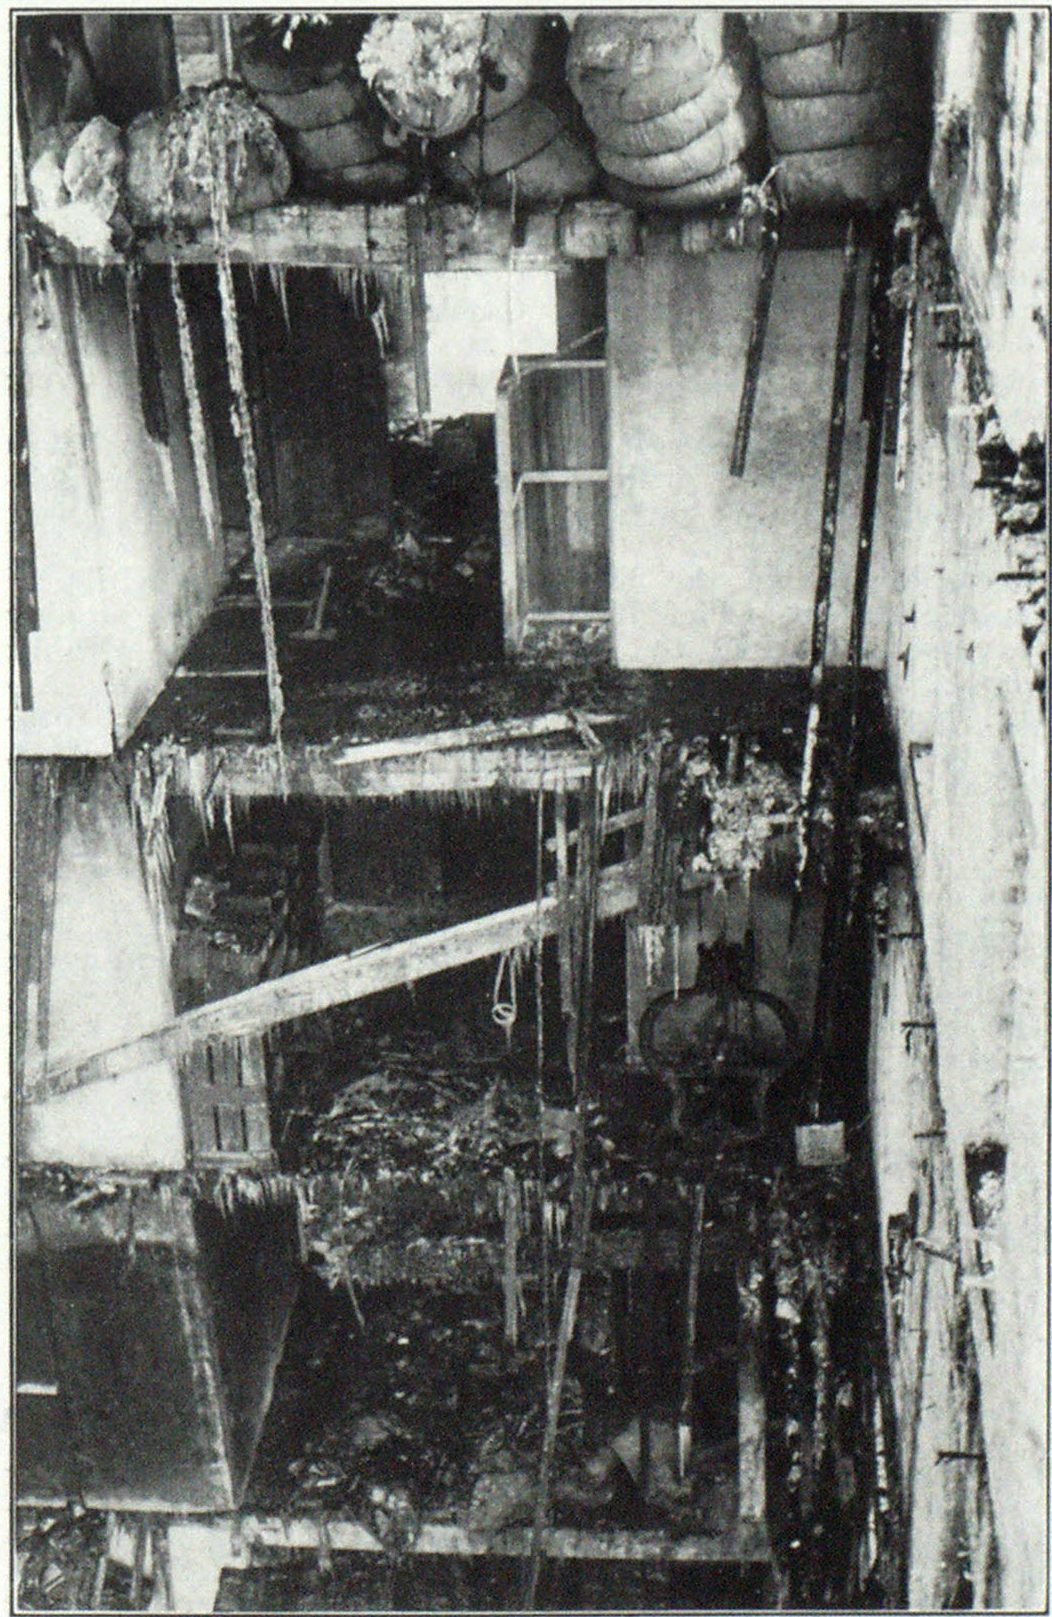 A Typical Case of Floor Failure Note the comparatively small fire damage in the interior of this rag and paper warehouse, although all the floors in the front part of the building were carried through by failure of the upper floors. This occurred in a seven story building in New York City in 1927. Three firemen were killed, ten others were injured. Note the baled rags on the top floor.